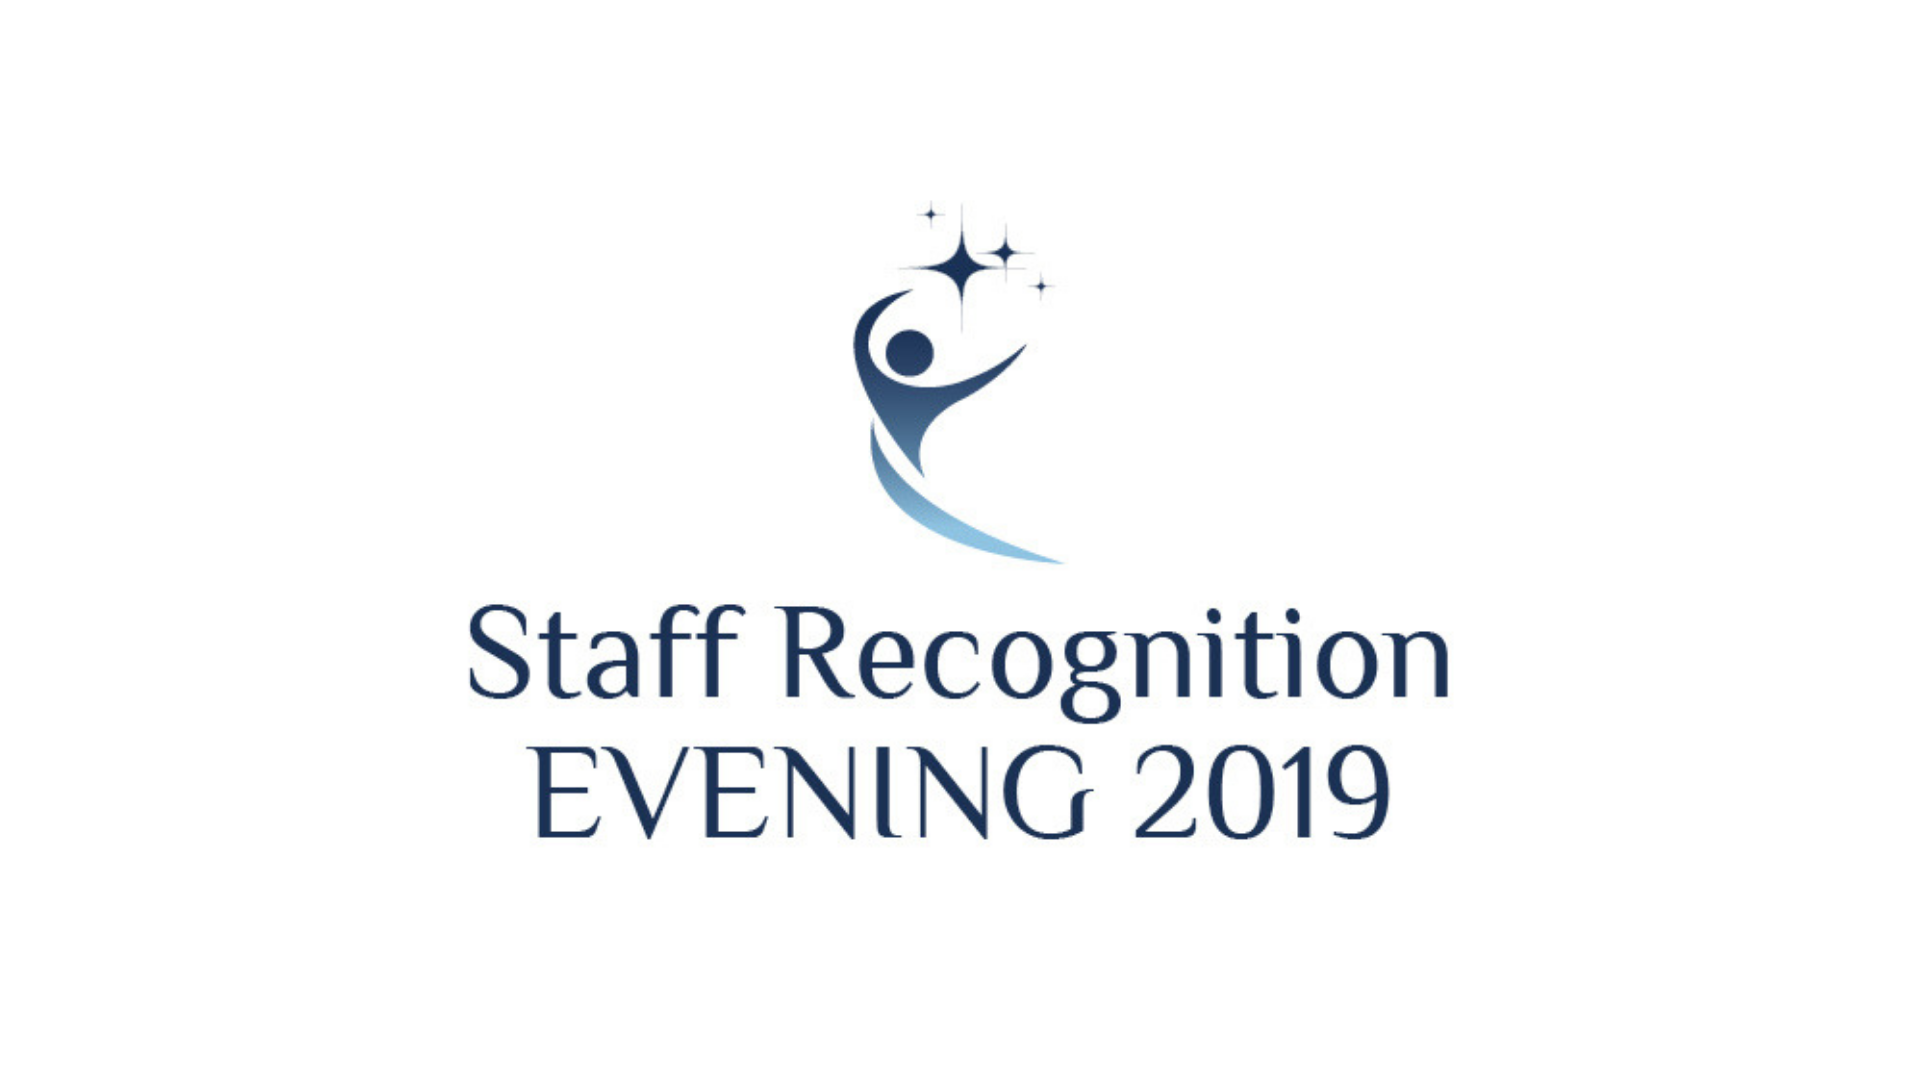 Staff Recognition Evening